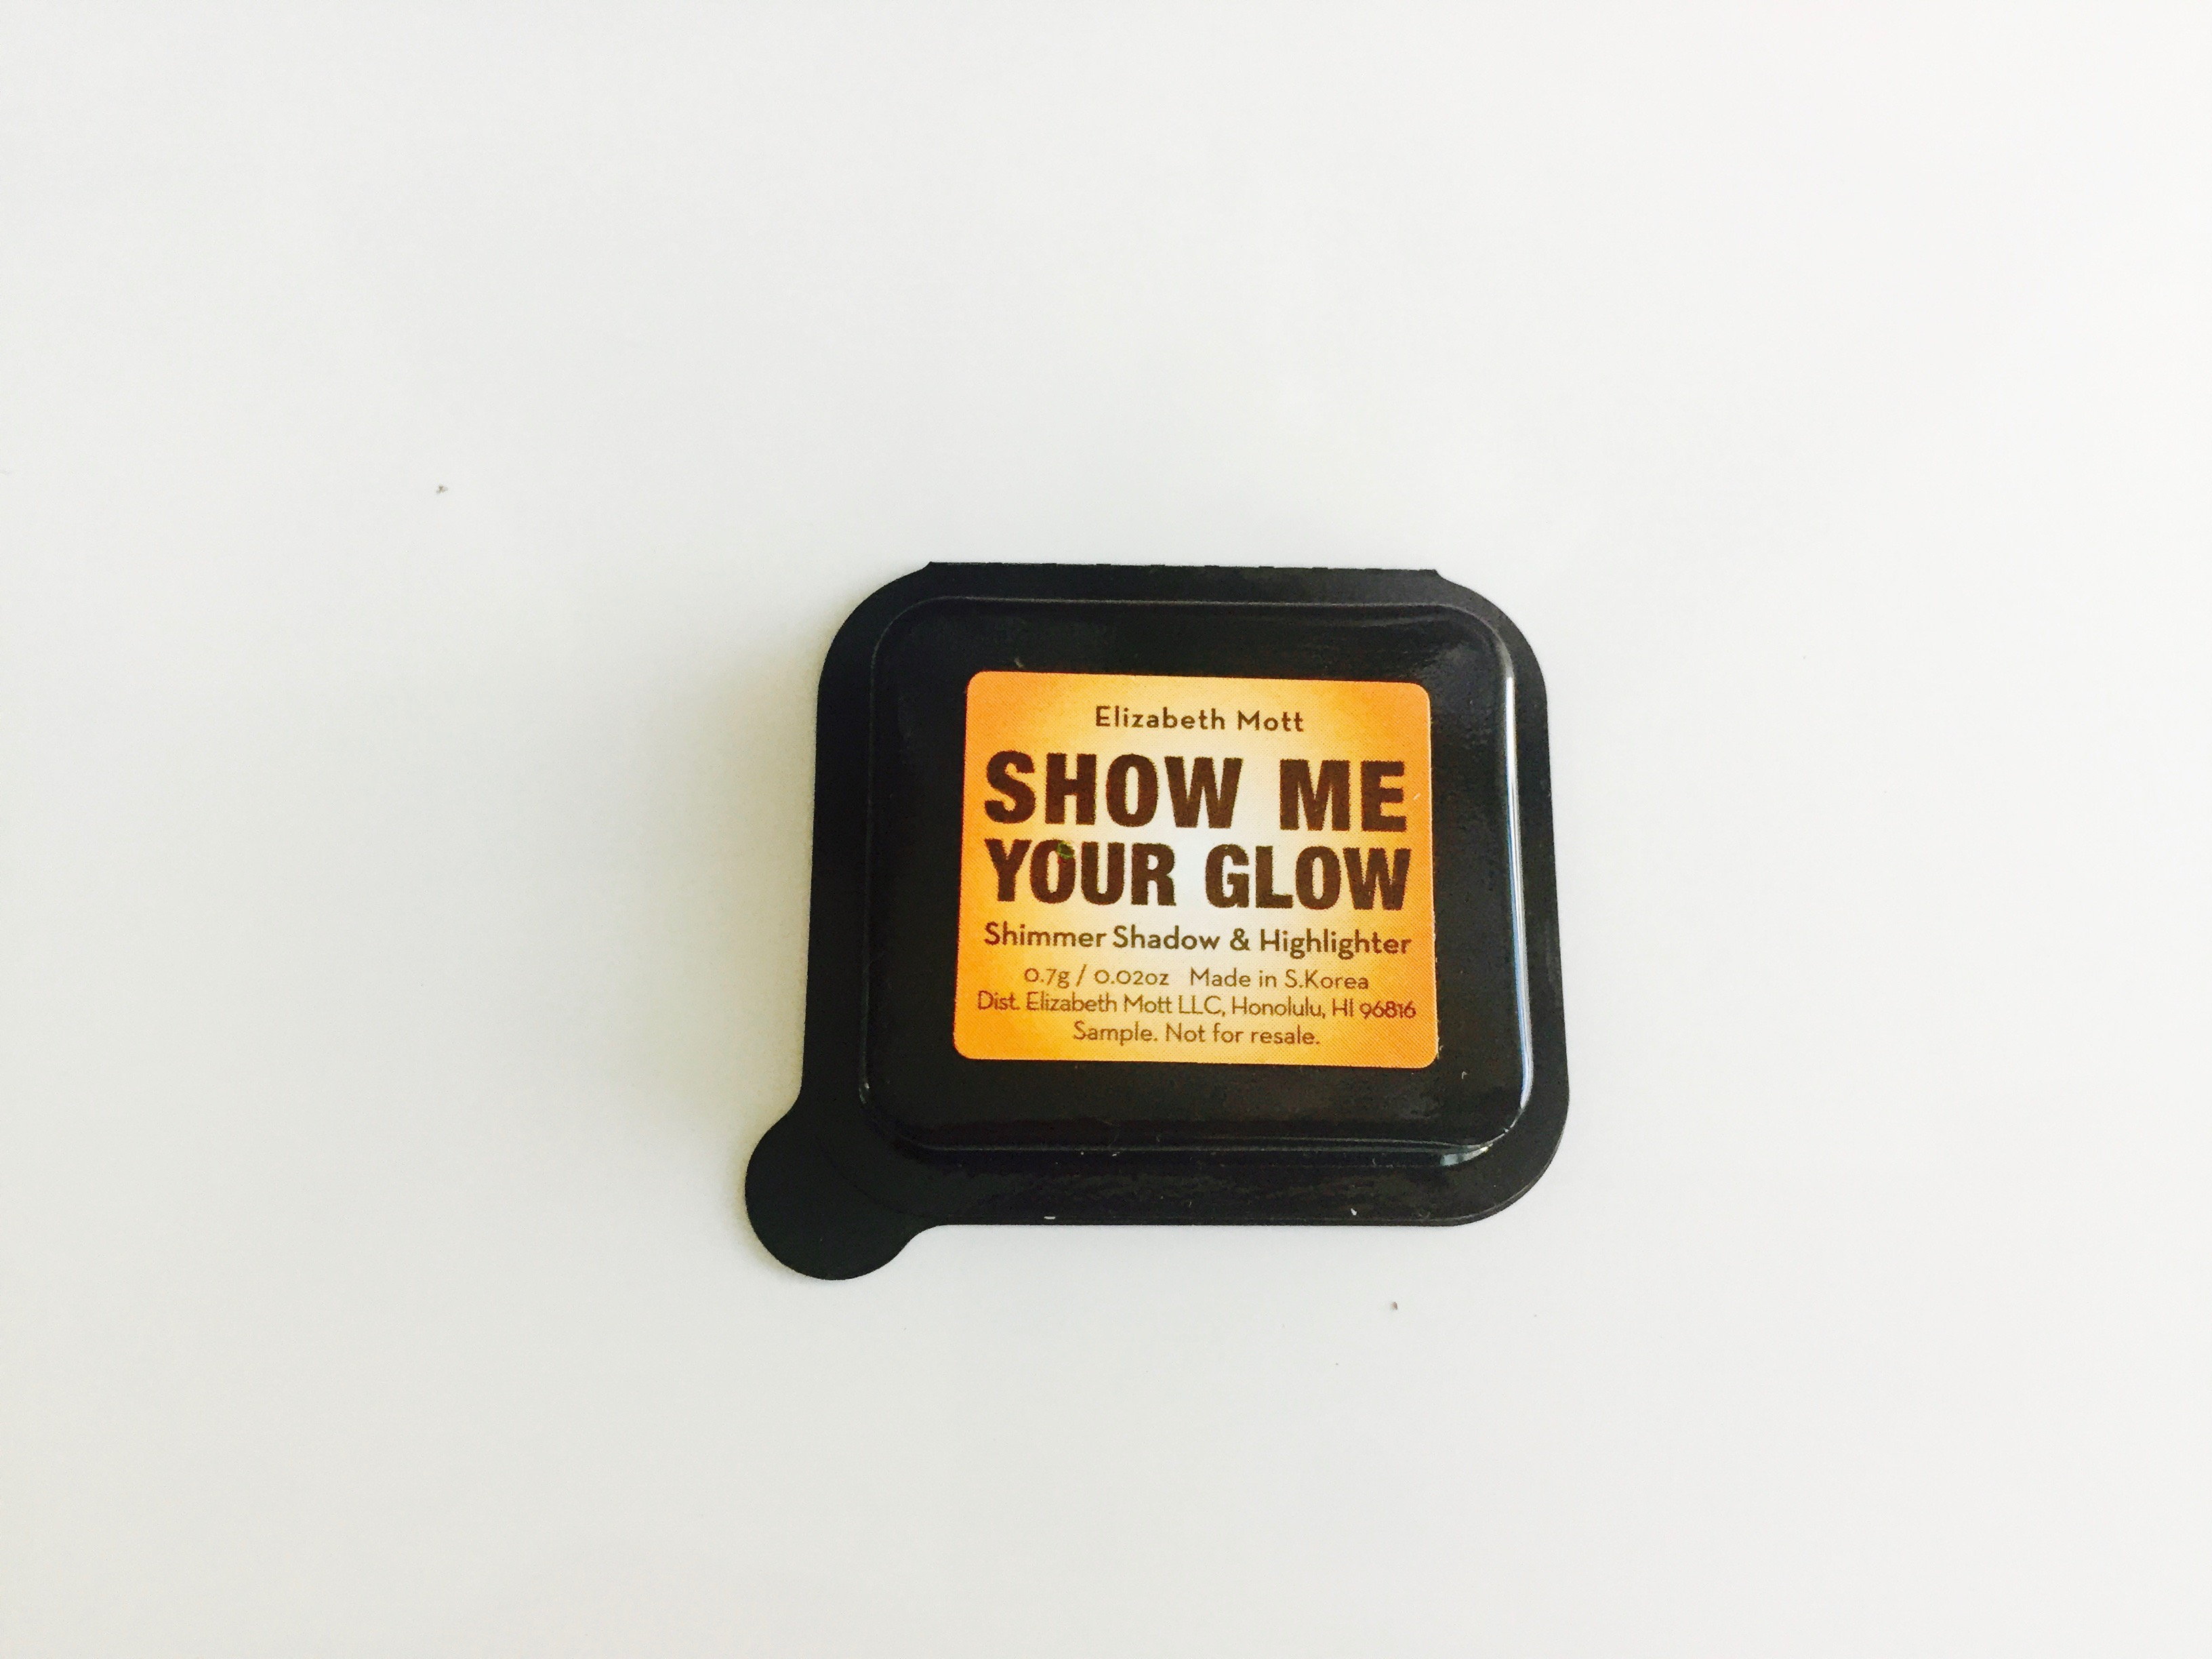 Elizabeth Mott Show Me Your Glow Shimmer Shadow & Highlighter